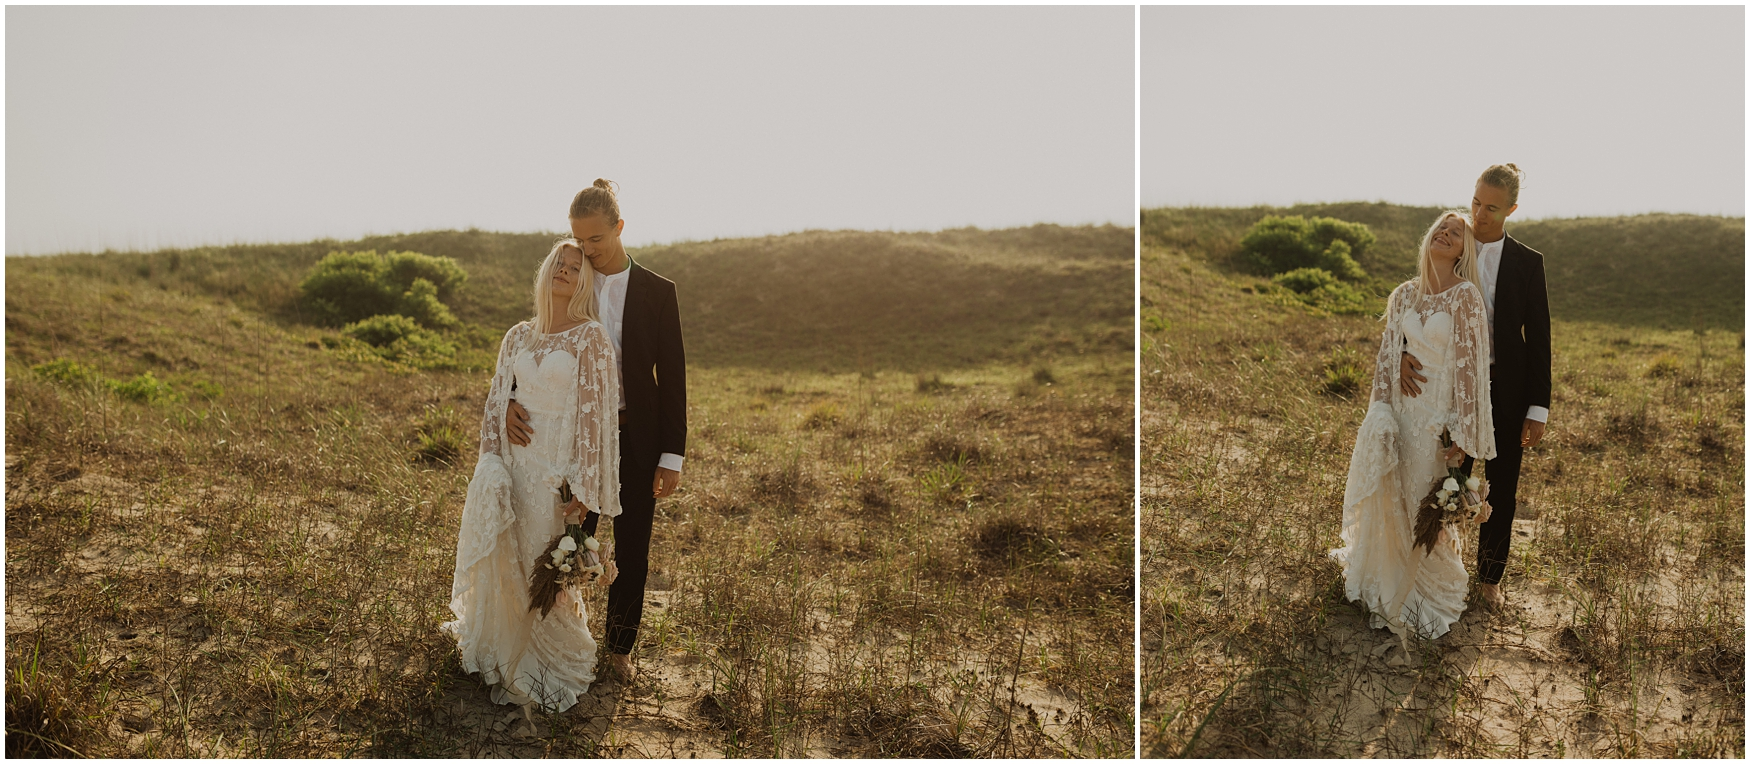 Hannah_Baldwin_Photography_Virginia_Beach_Elopement_Sunrise_0202.jpg